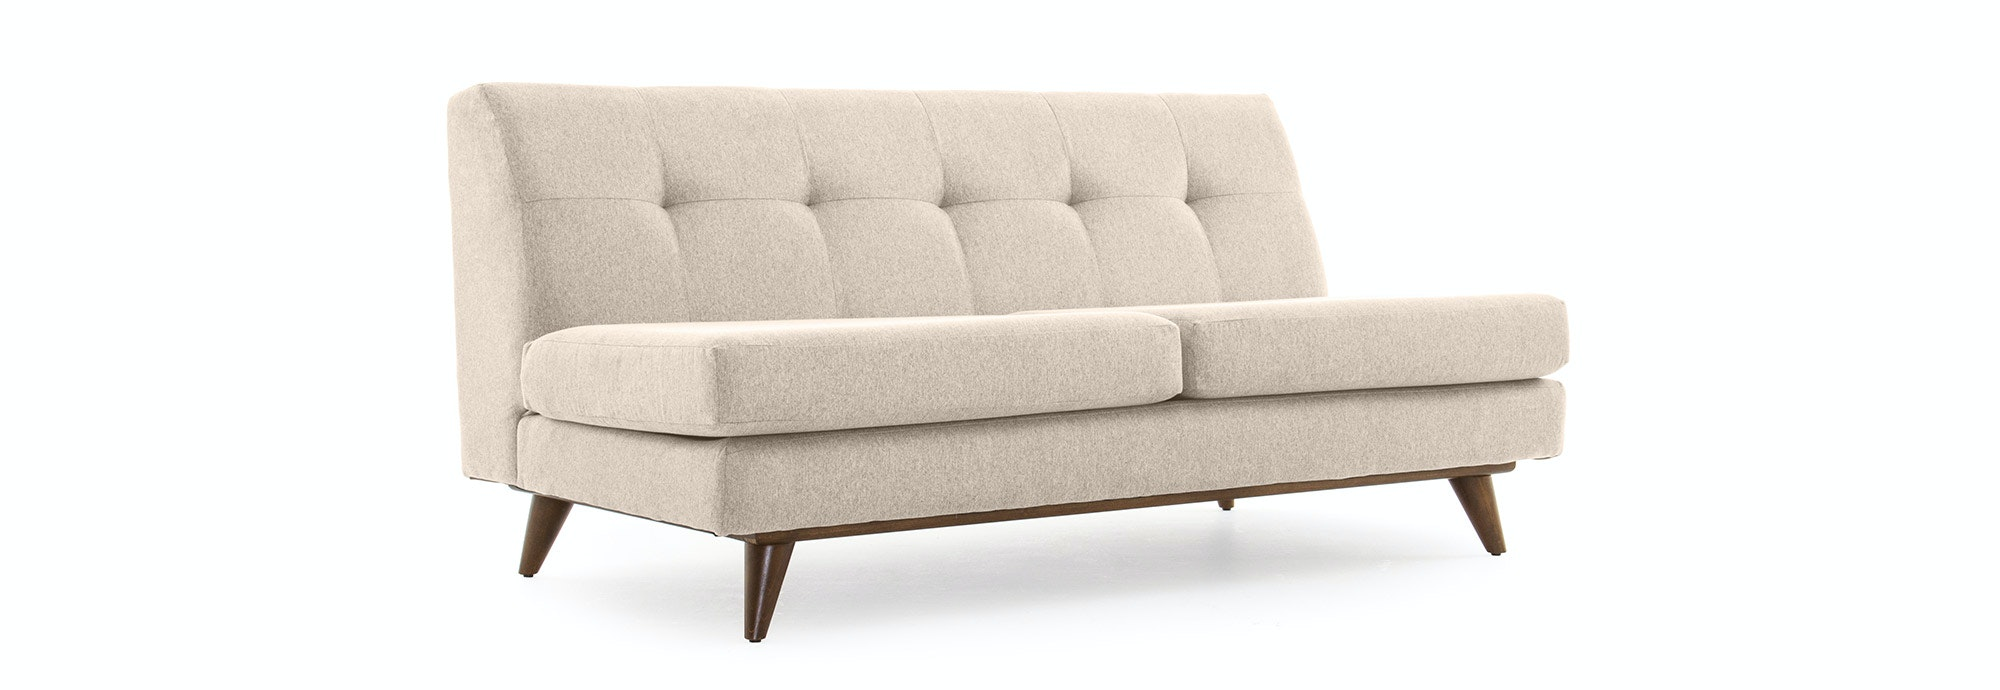 Armless Loveseat With Tufted Armless Loveseat For Modern